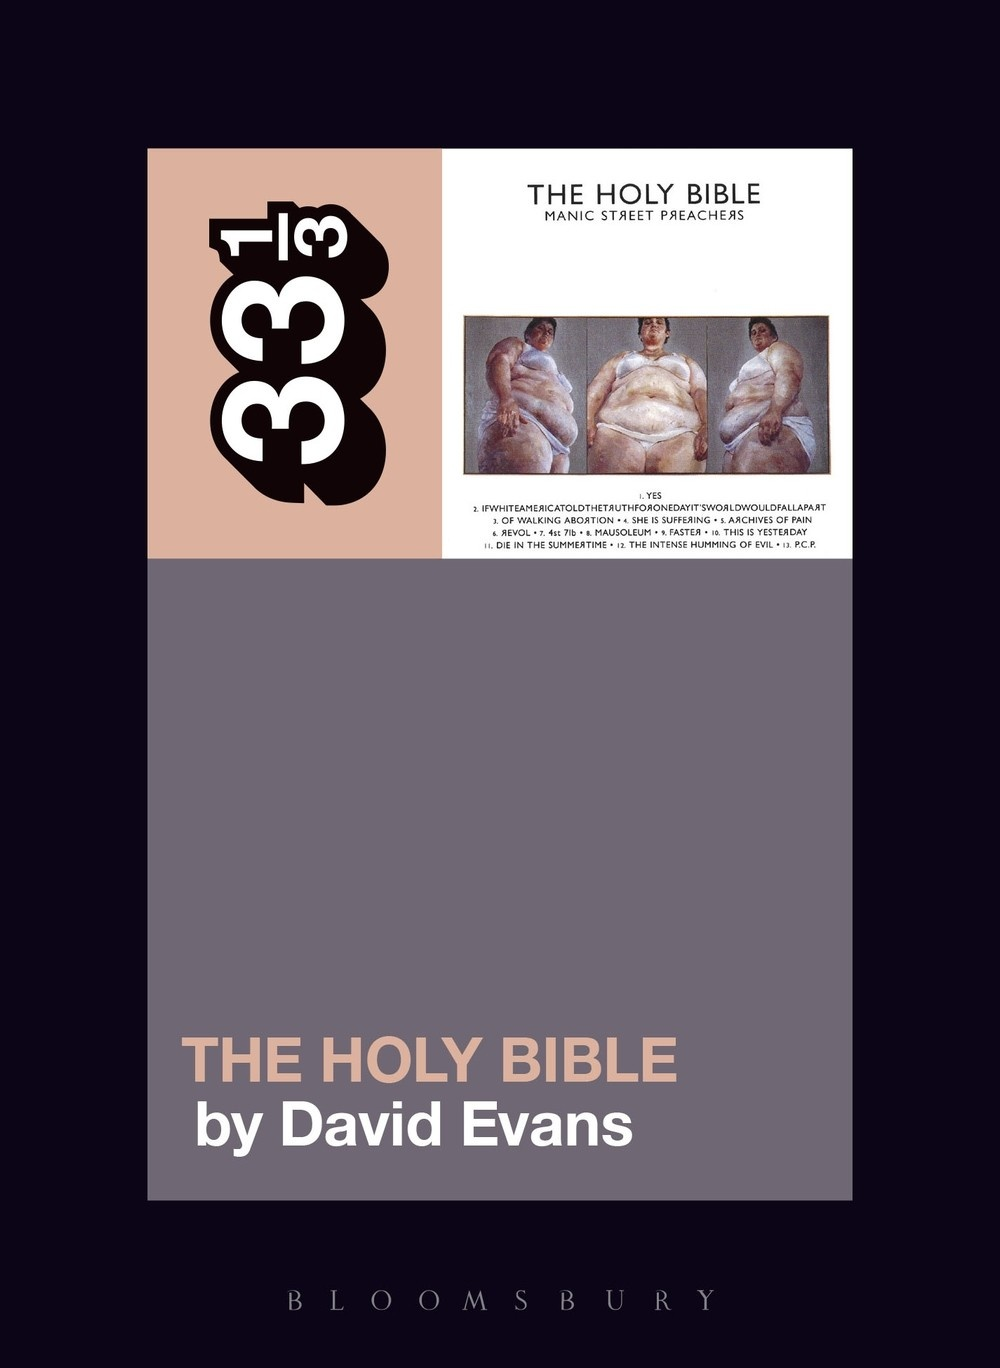 33 1/3 Series 33 1/3 - #137 - Manic Street Preachers' The Holy Bible - David Evans